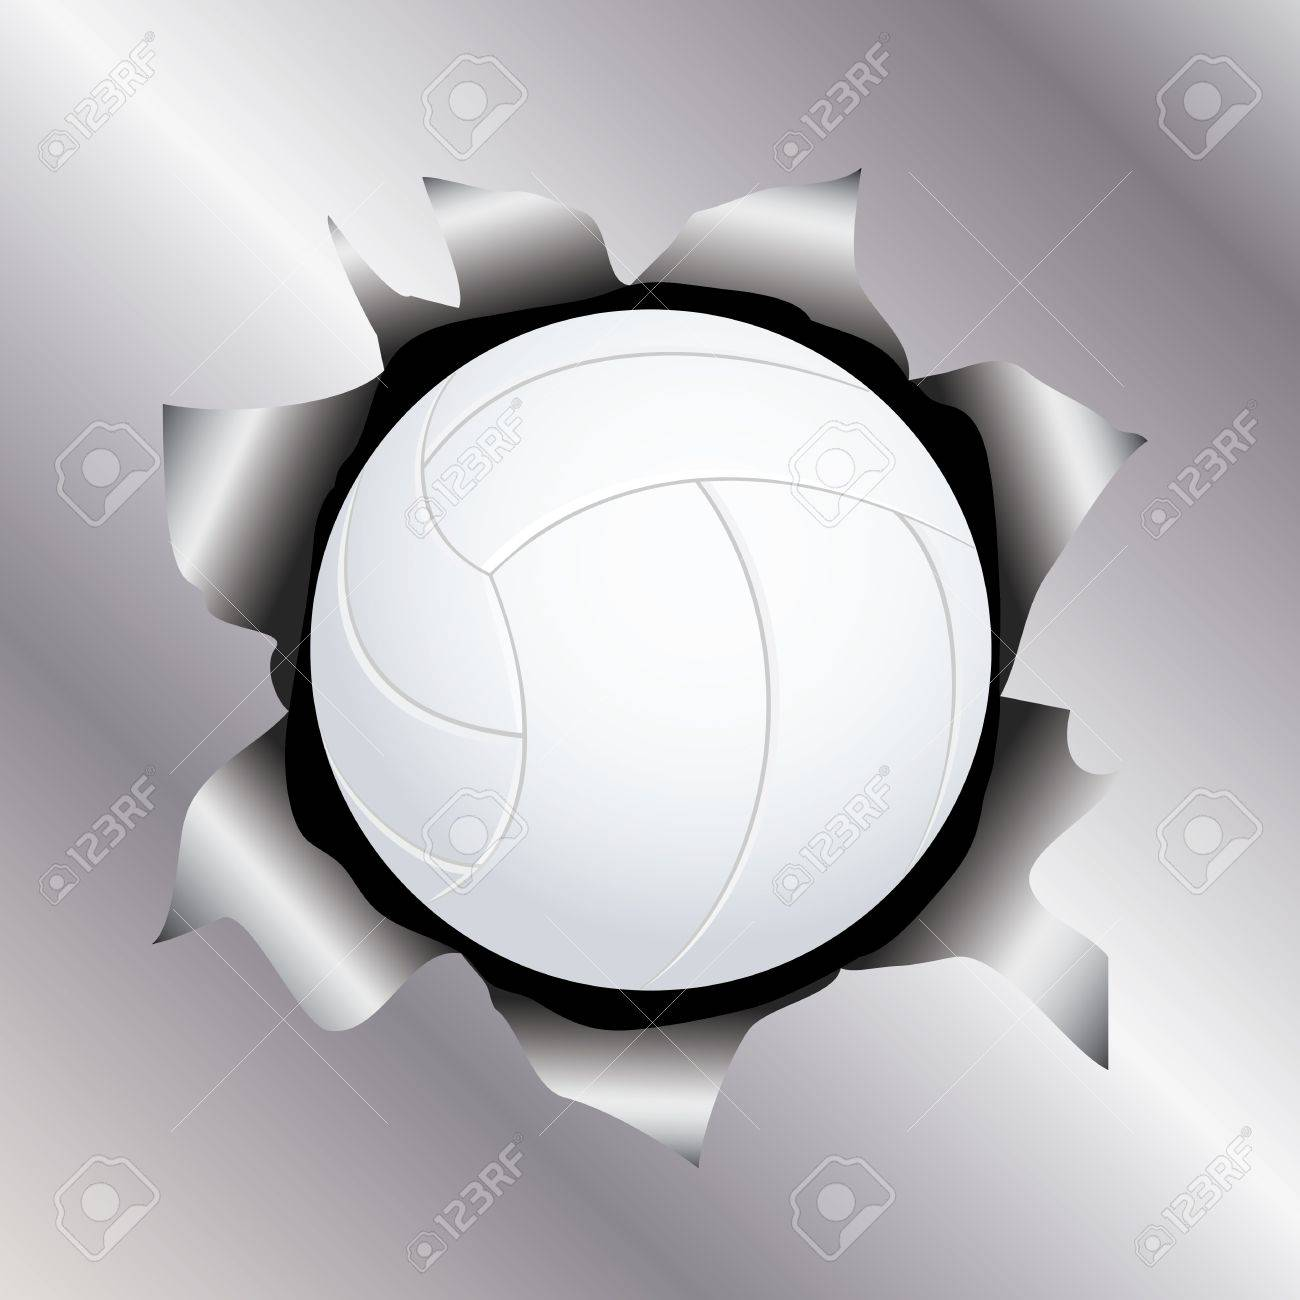 illustration of a volleyball bursting trough a metal sheet effects. Stock Vector - 17852190